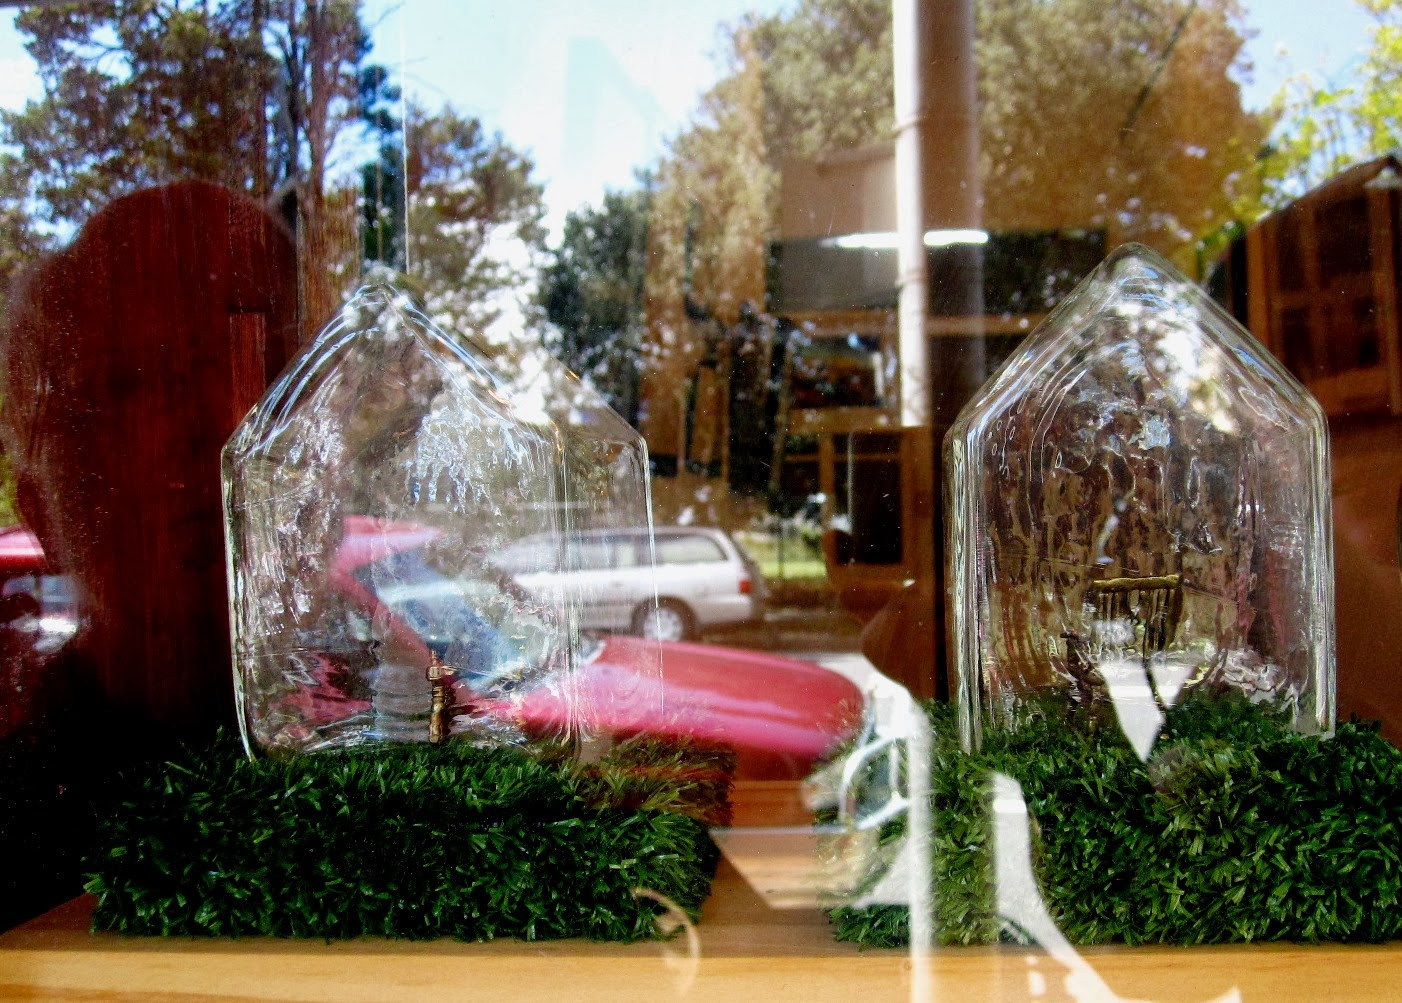 Handmade glass houses with miniature chairs inside, sitting on fake grass